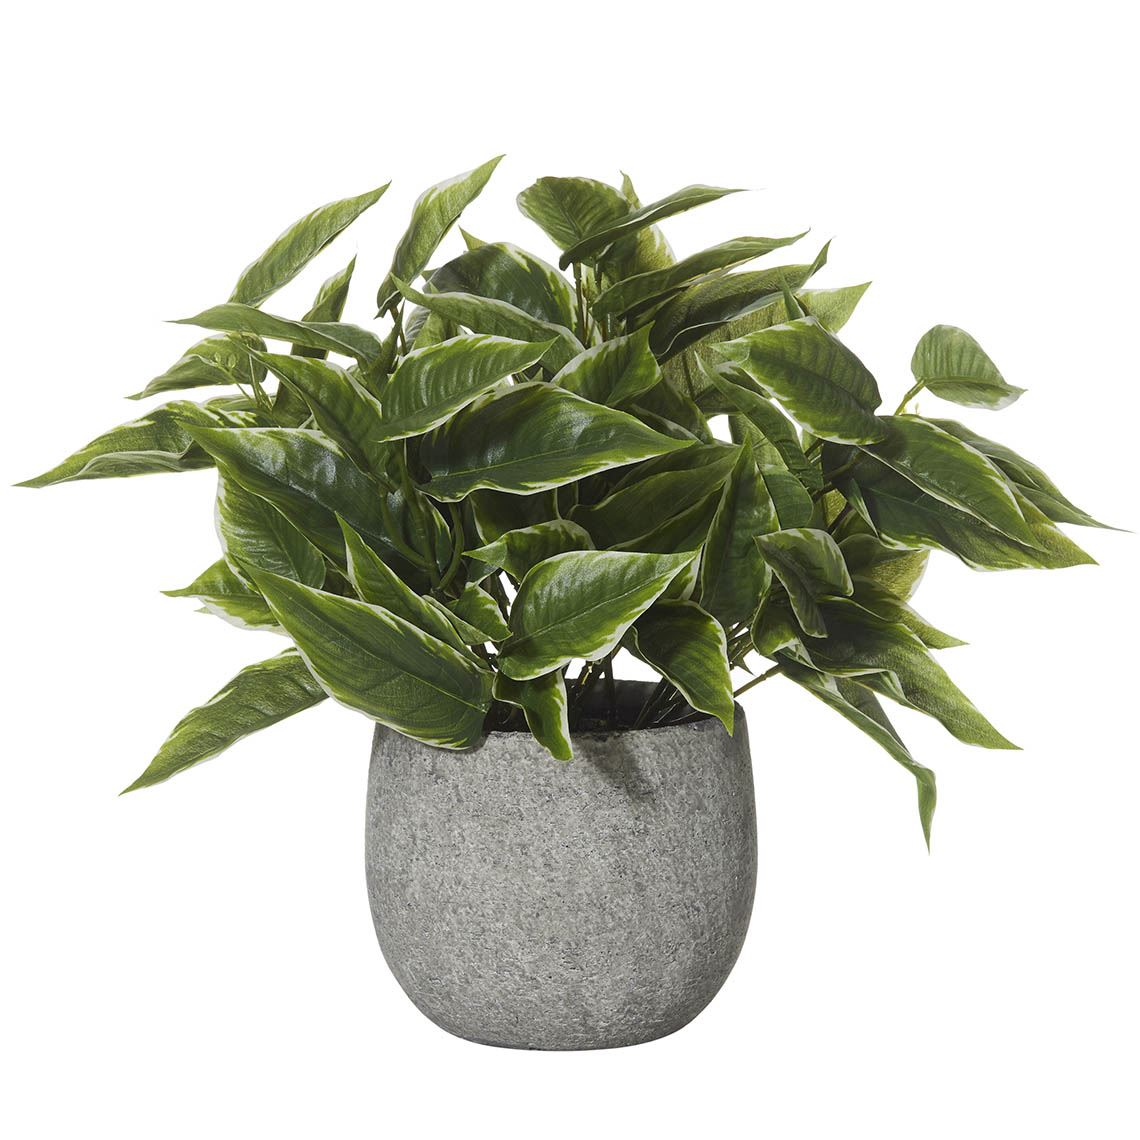 Mini Hosta Artificial Foliage Size W 34cm x D 36cm x H 48cm in Green Plastic/Ceramic Freedom by Freedom, a Plants for sale on Style Sourcebook